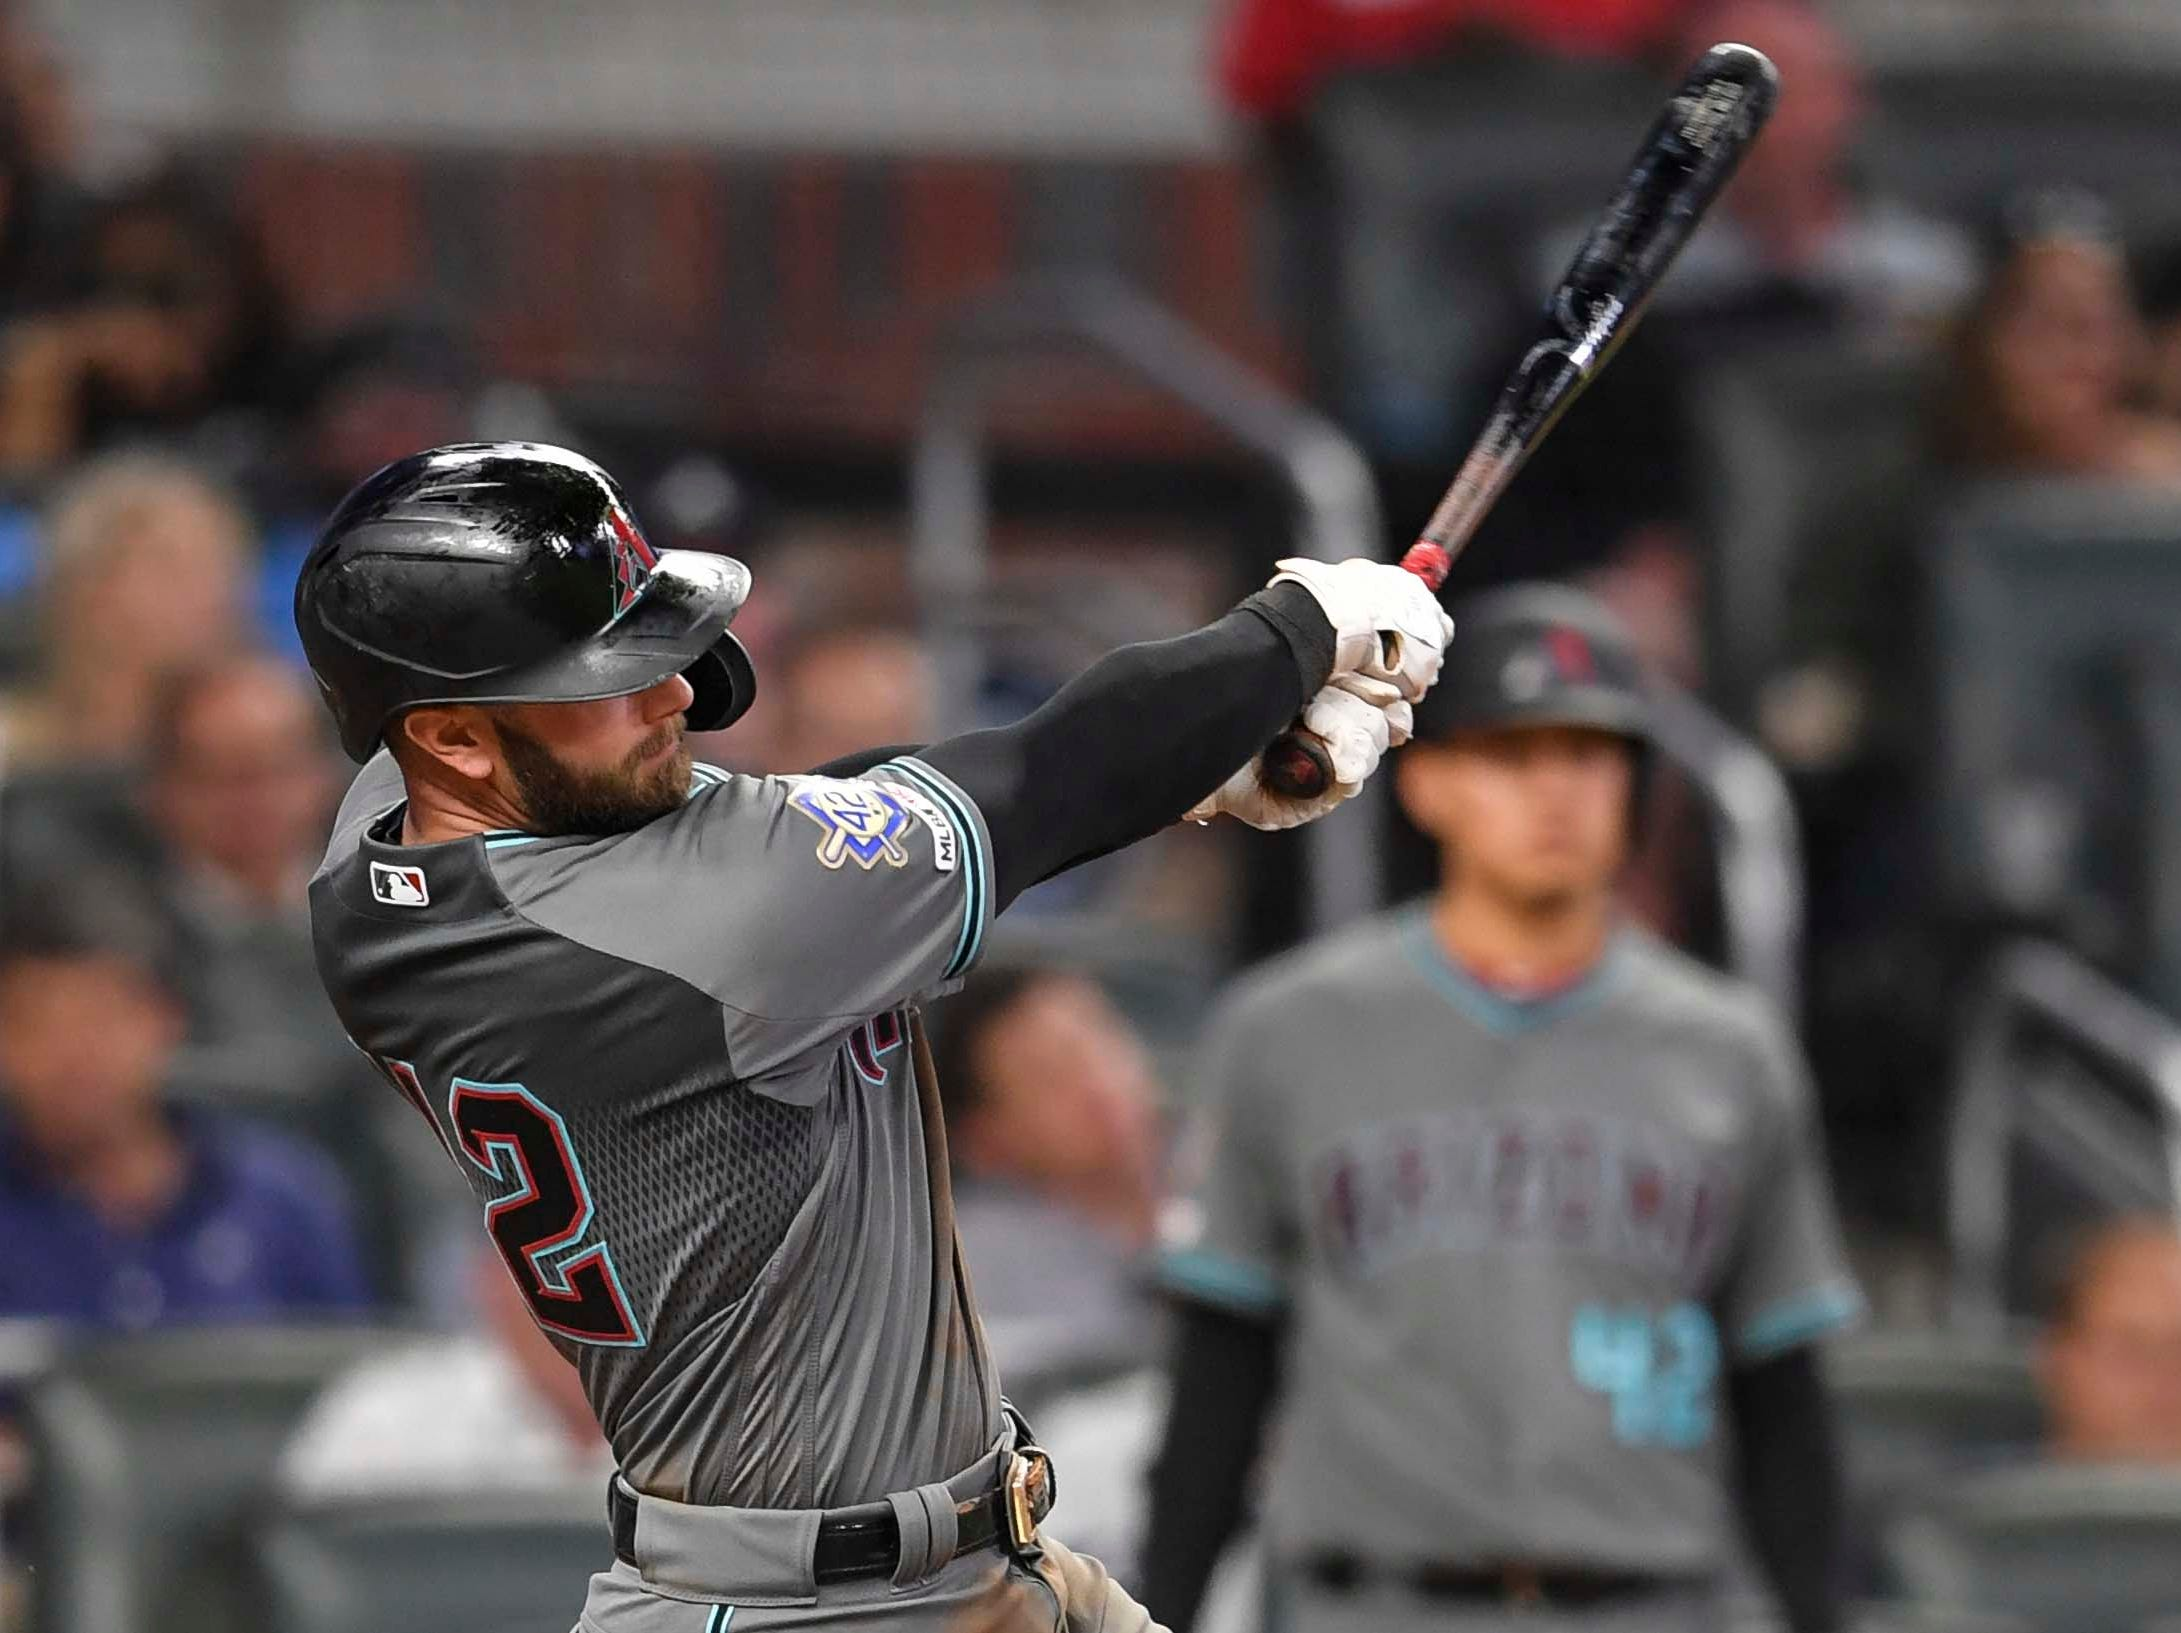 Apr 16, 2019; Atlanta, GA, USA; Arizona Diamondbacks tfirst baseman Christian Walker (53) singles driving in a run against the Atlanta Braves during the seventh inning at SunTrust Park. Mandatory Credit: Dale Zanine-USA TODAY Sports